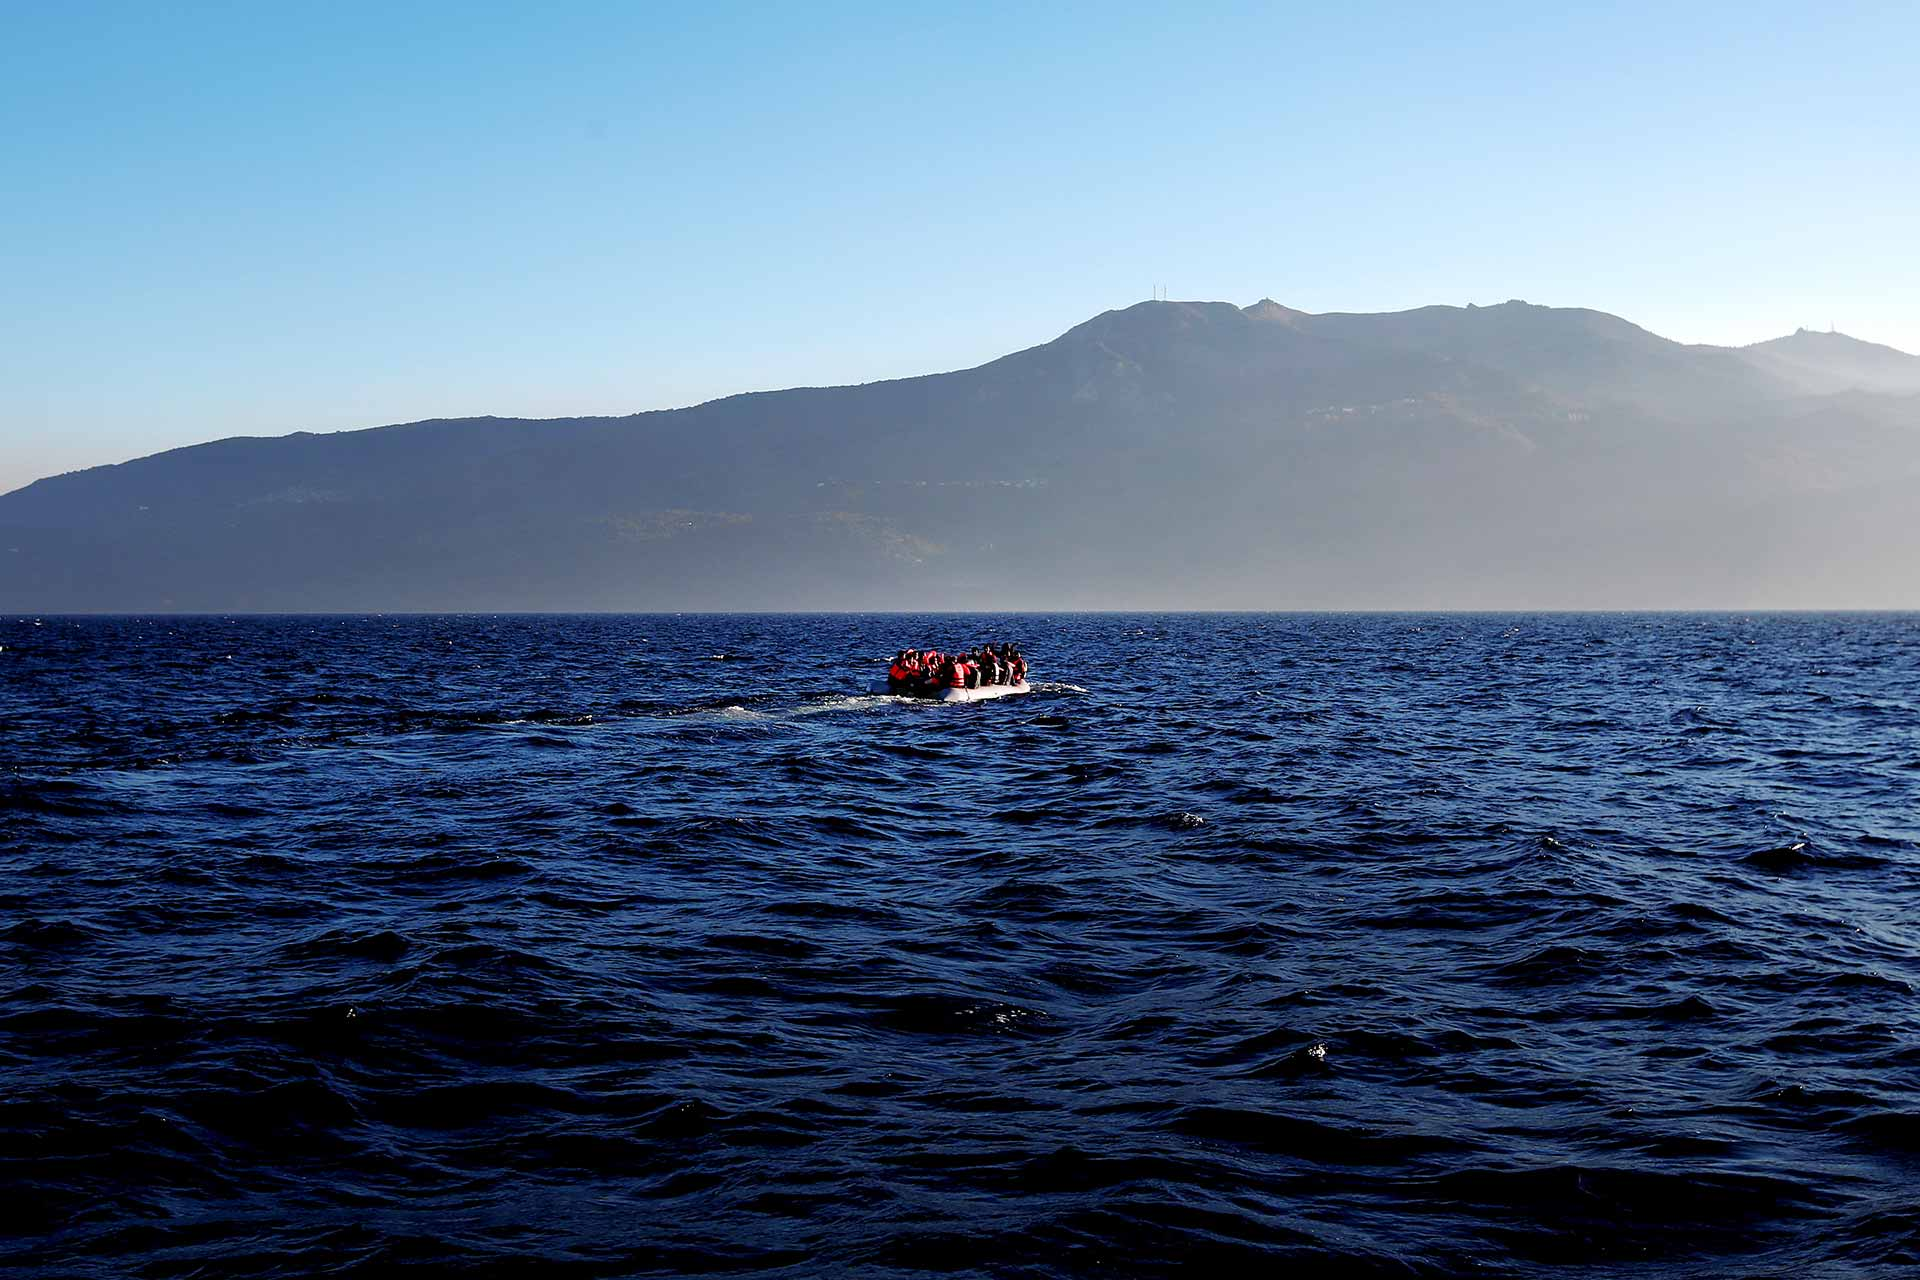 Boat of migrants crossing the Aegean Sea from Turkey to Greece